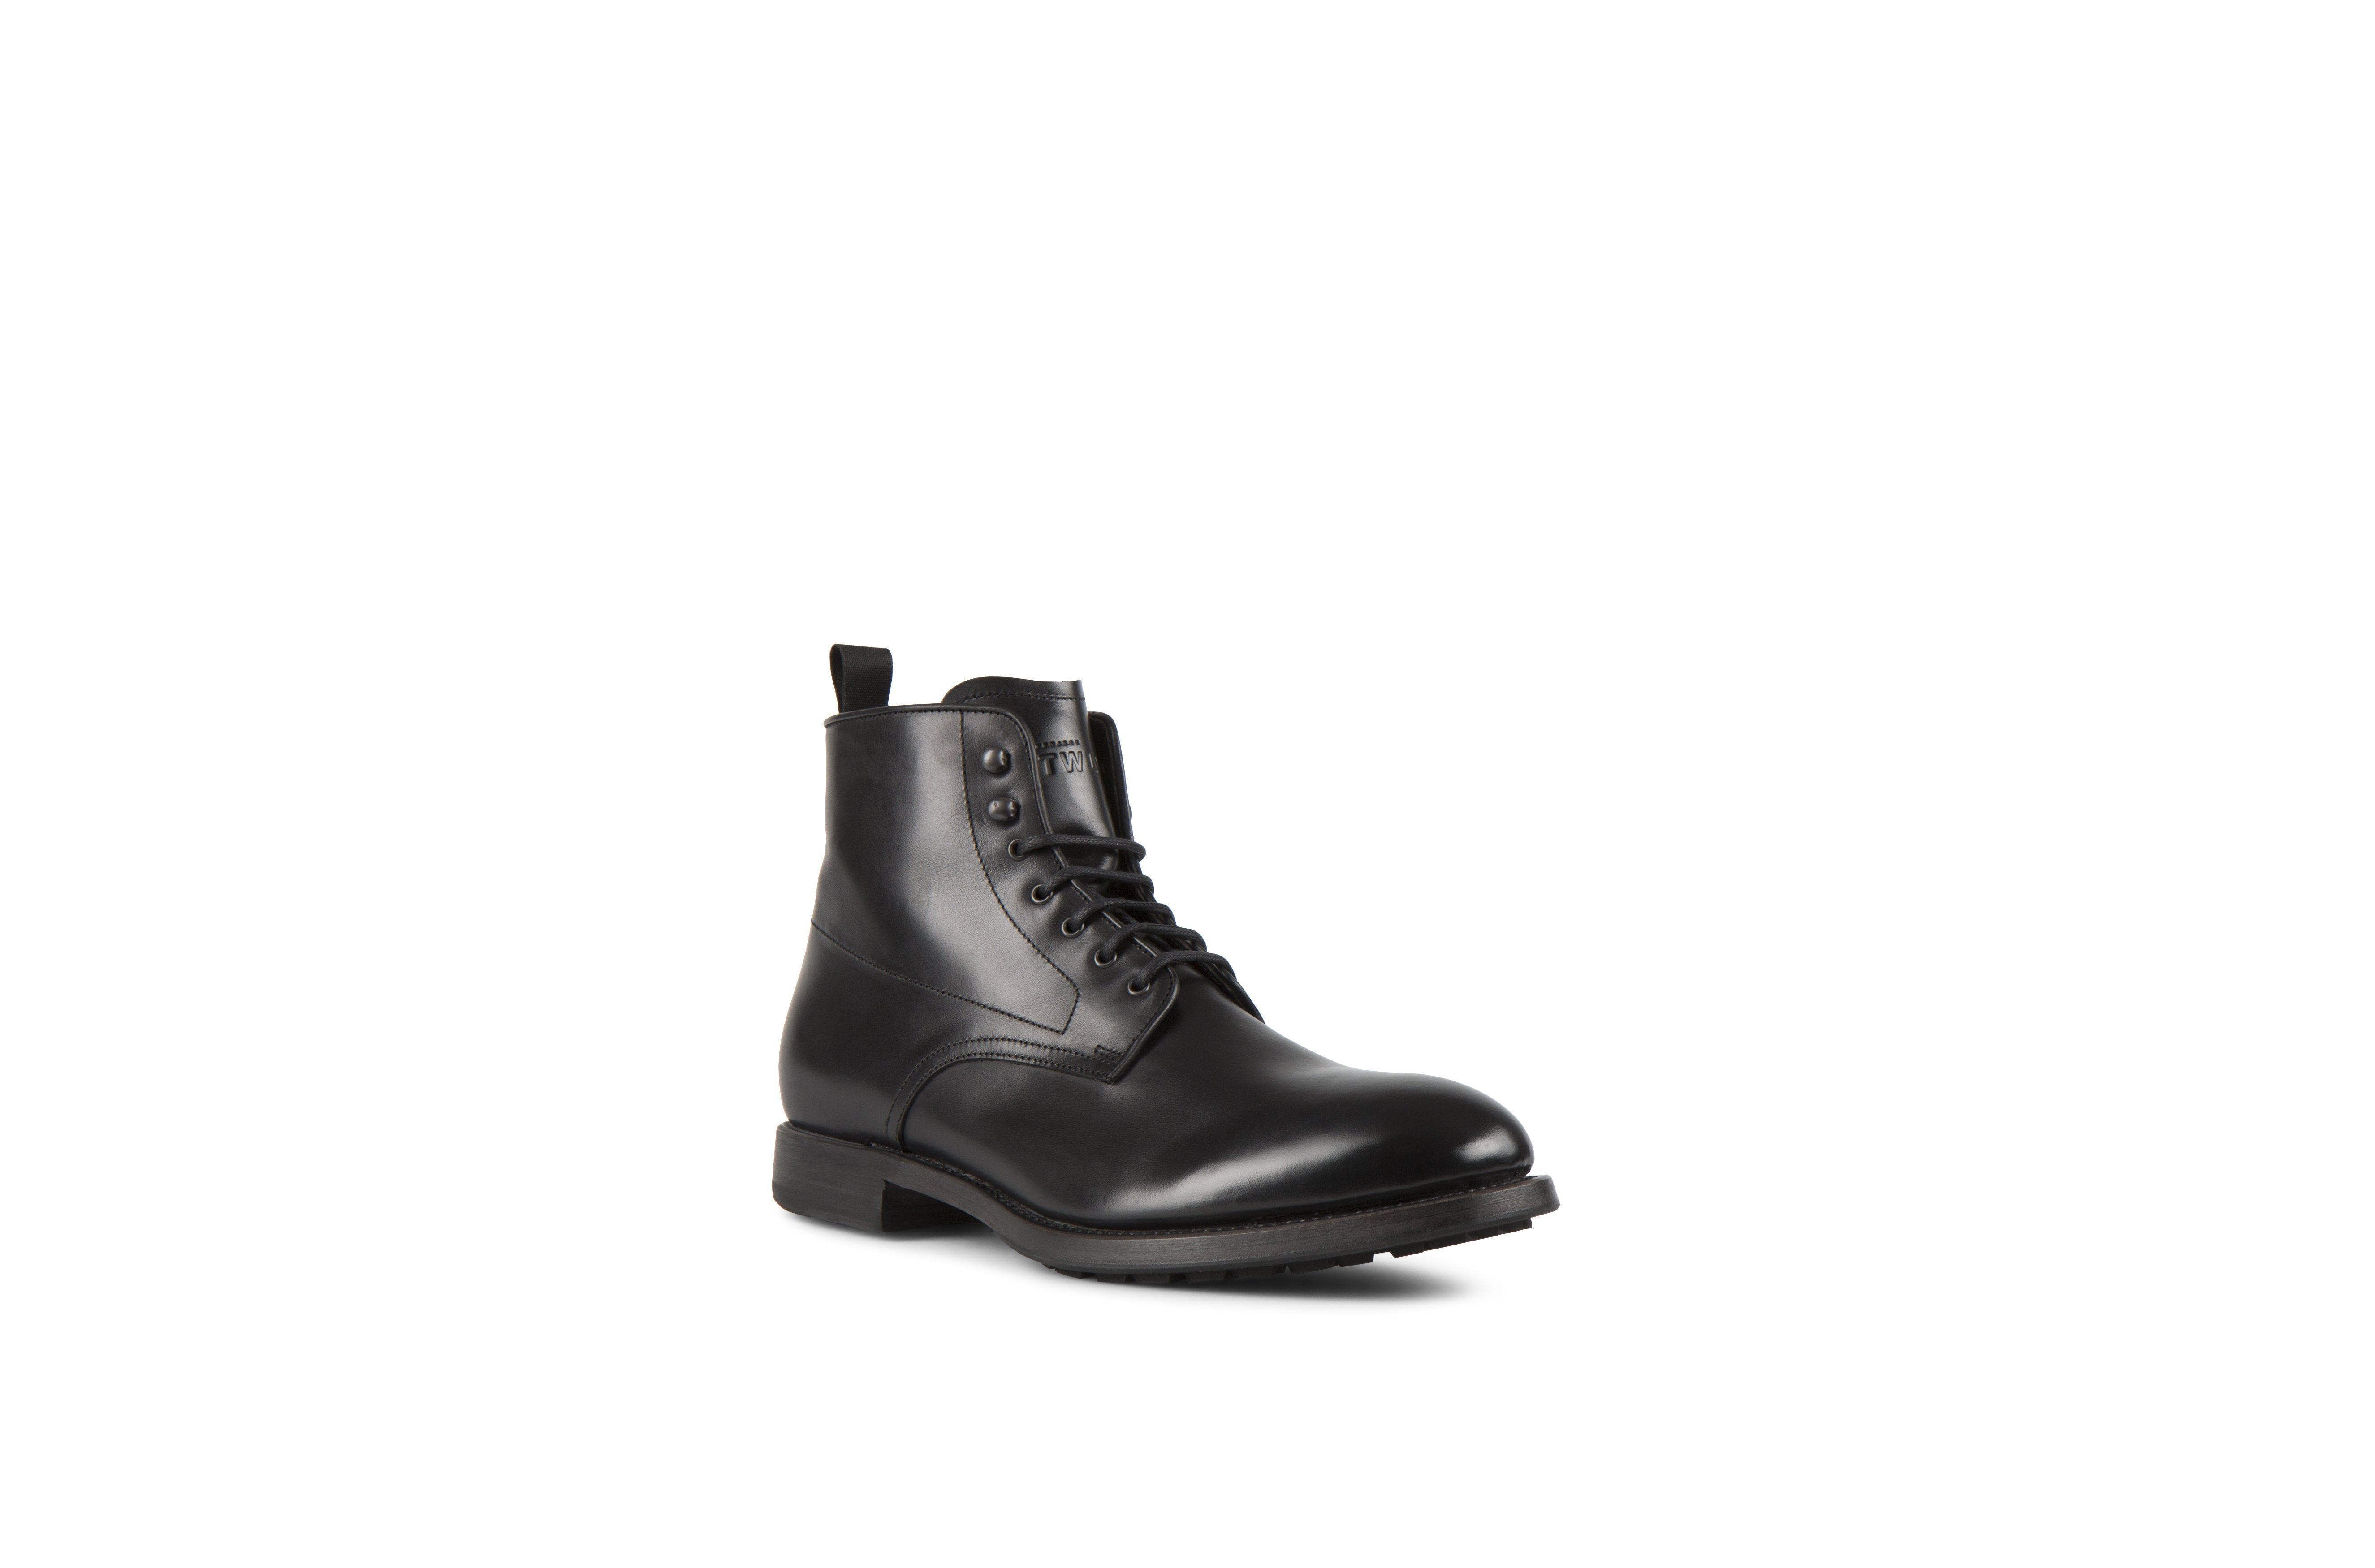 Cult Black Cordovan Leather Balmoral Boots